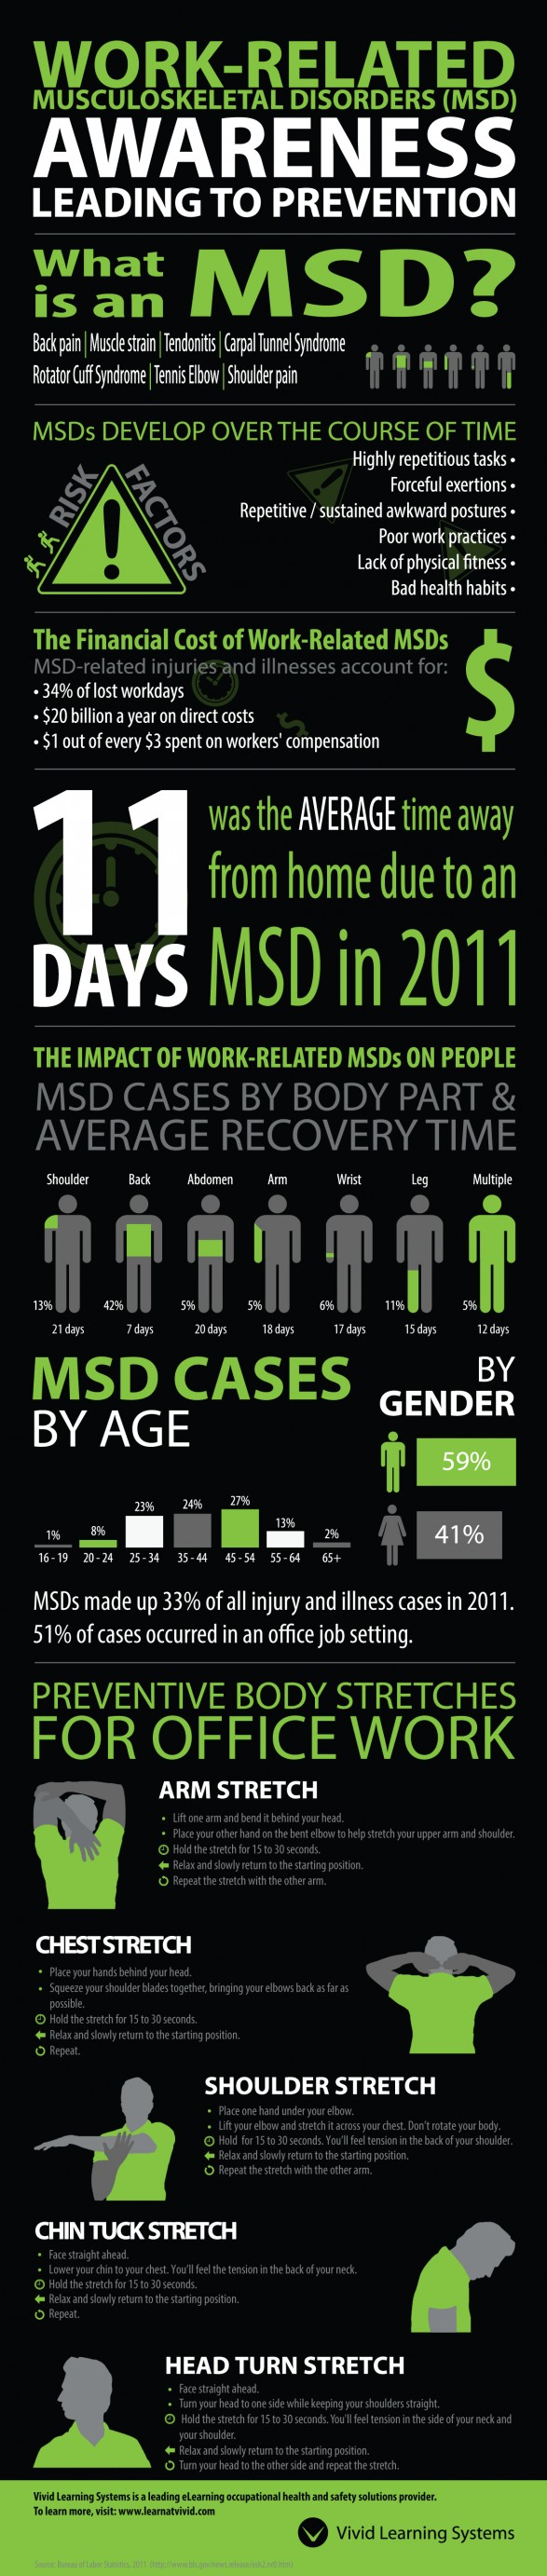 workrelated-musculoskeletal-disorders-msd_521e356619d60_w587